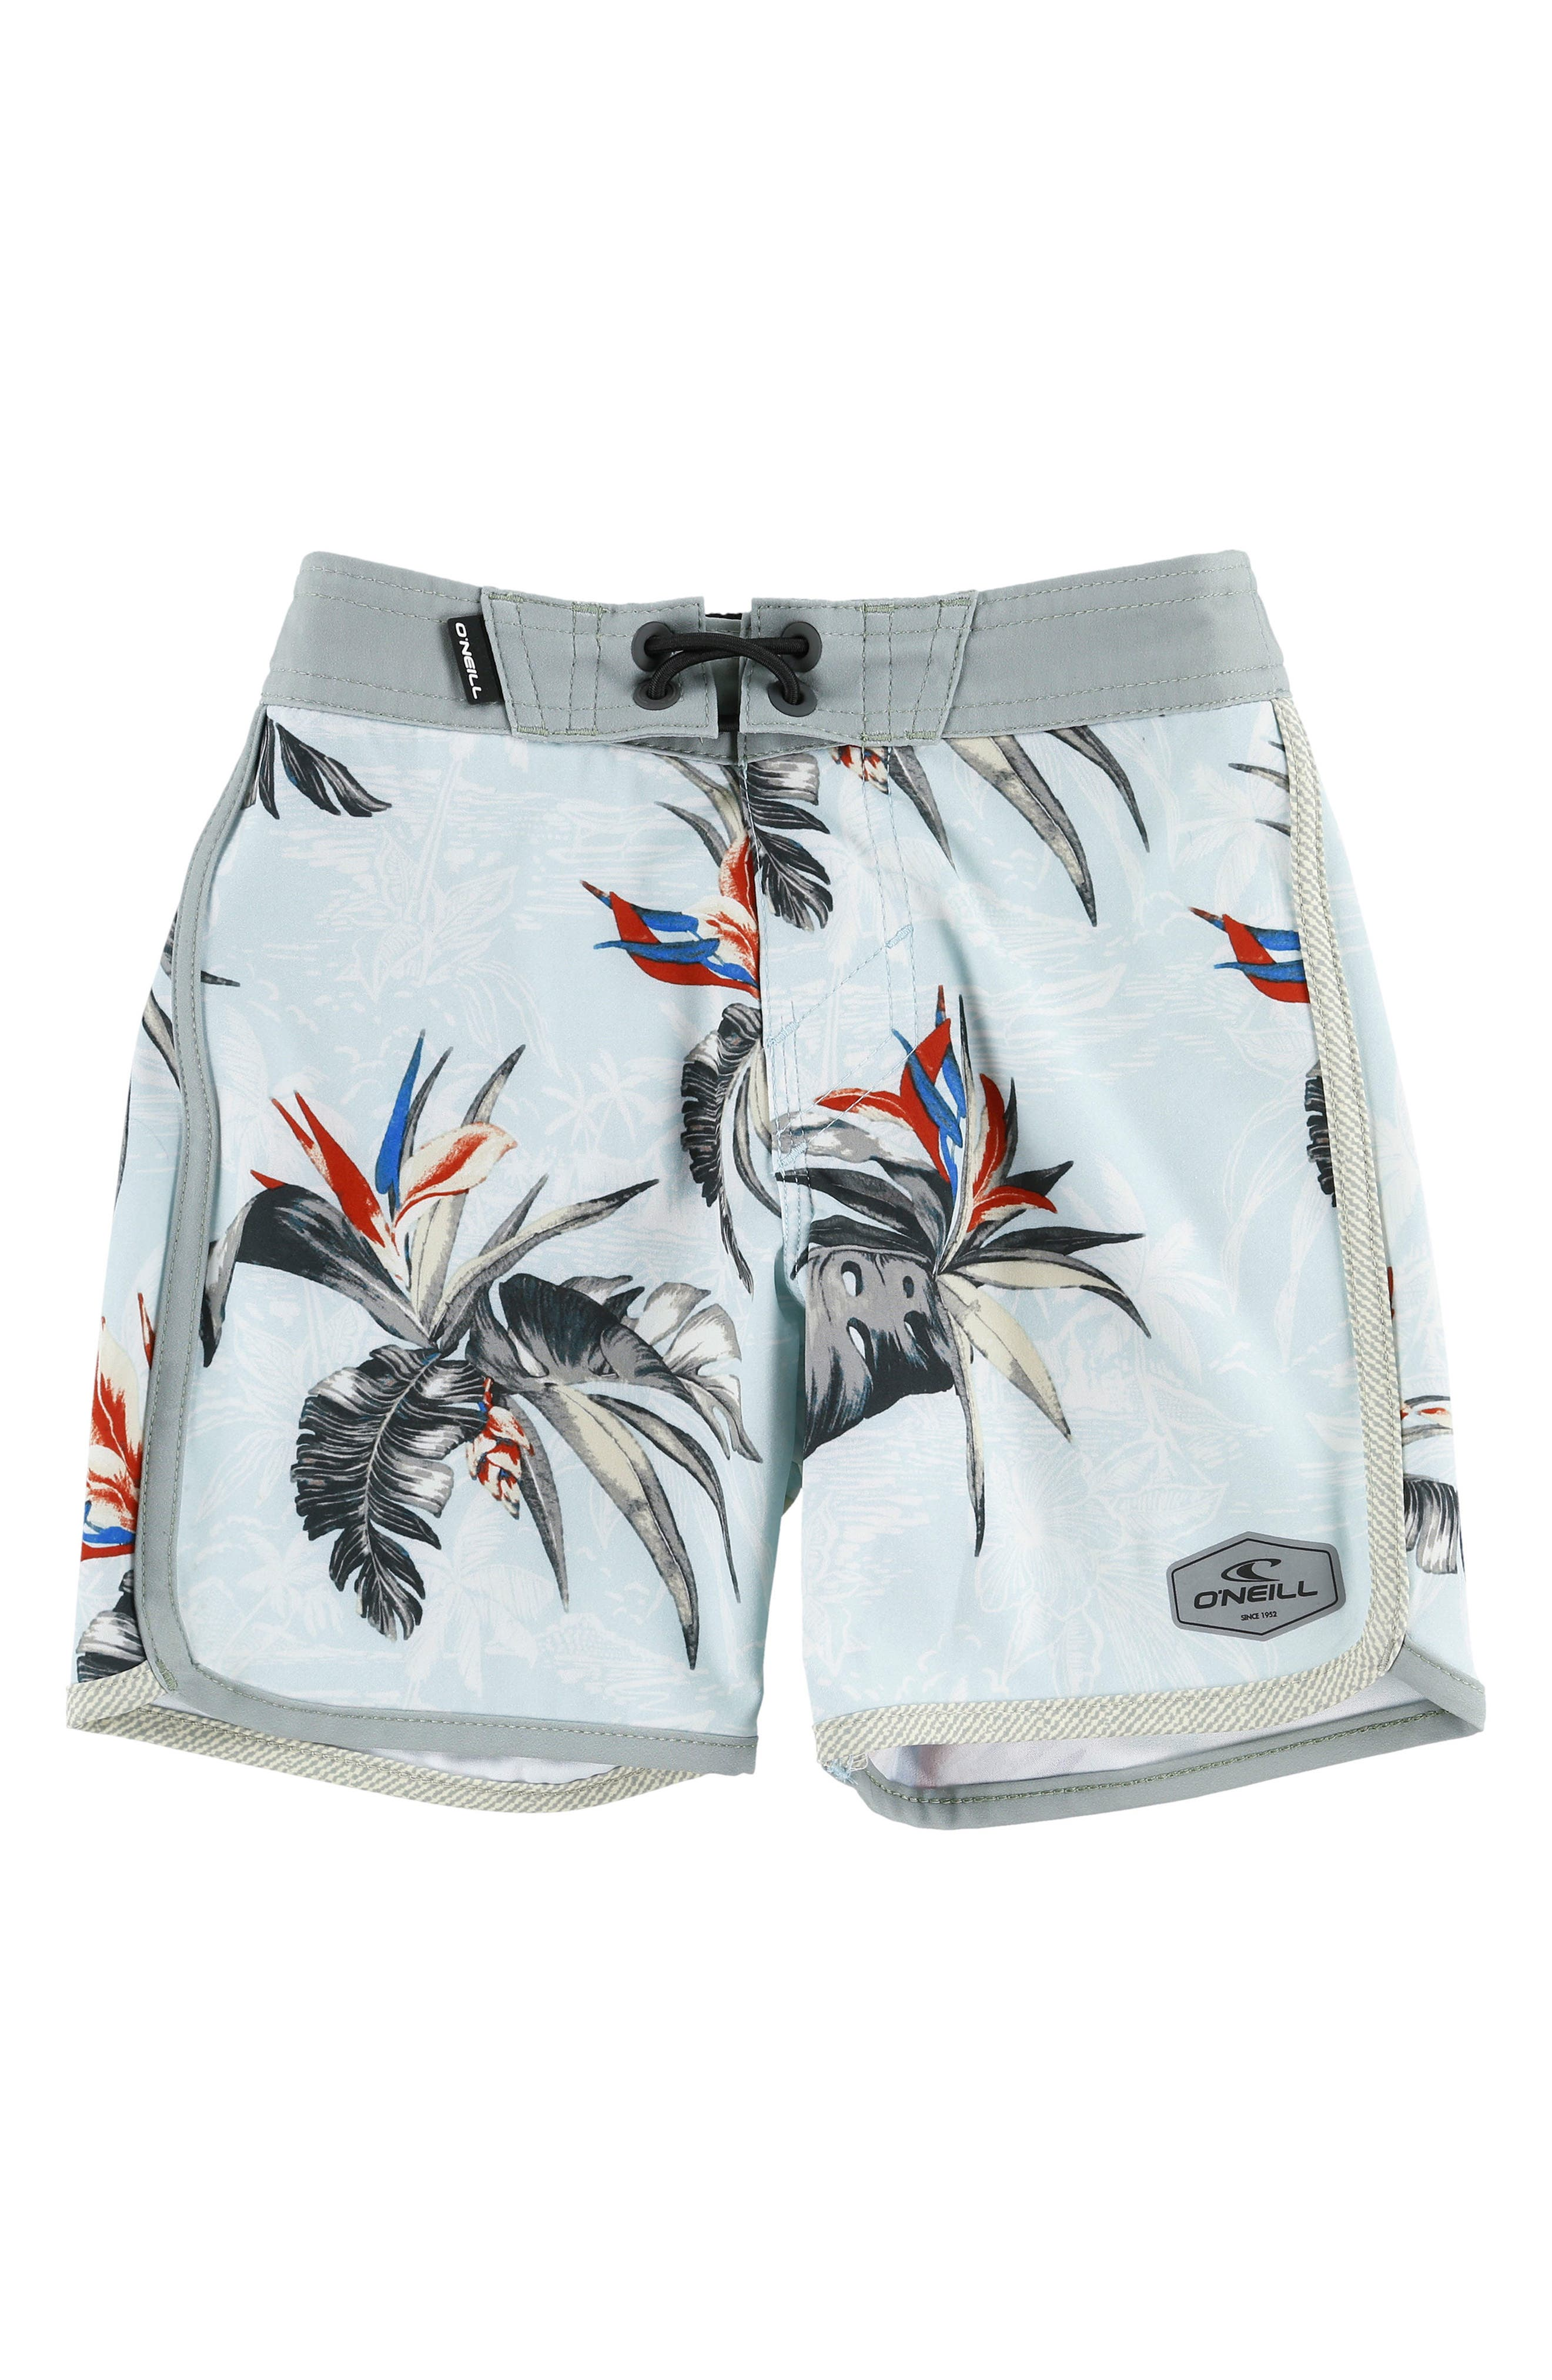 Alternate Image 1 Selected - O'Neill Hyperfreak Islander Board Shorts (Little Boys)